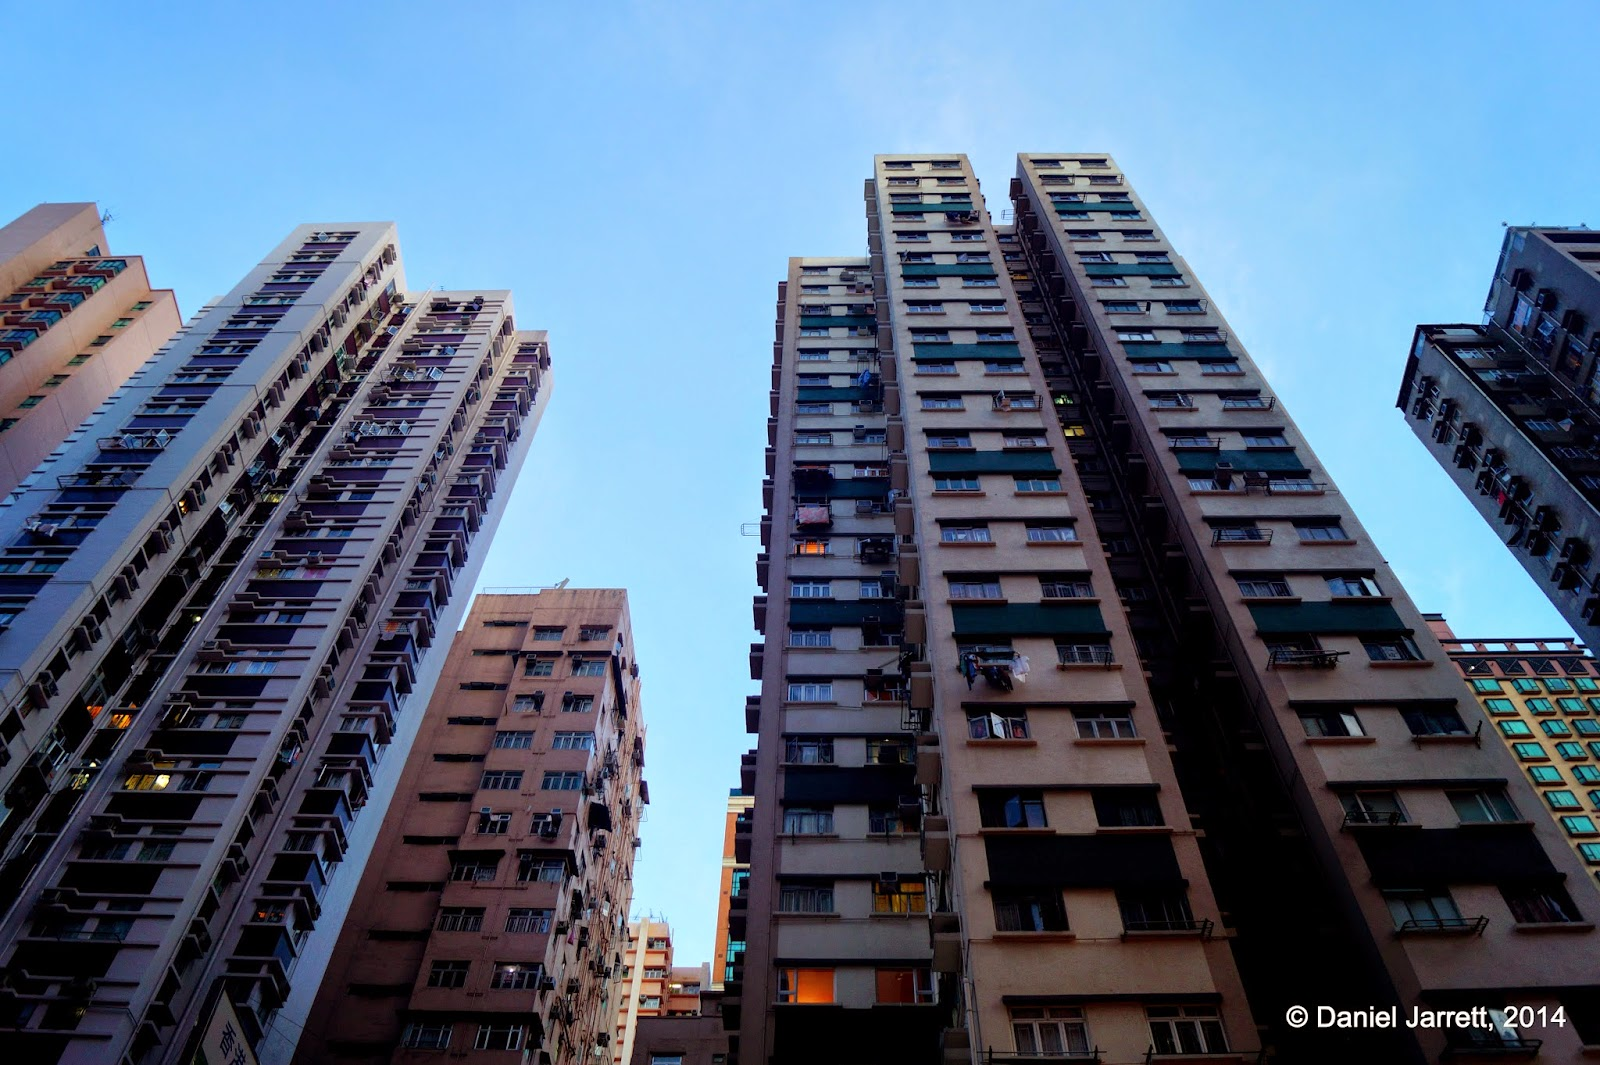 Humanity of Hong Kong Housing